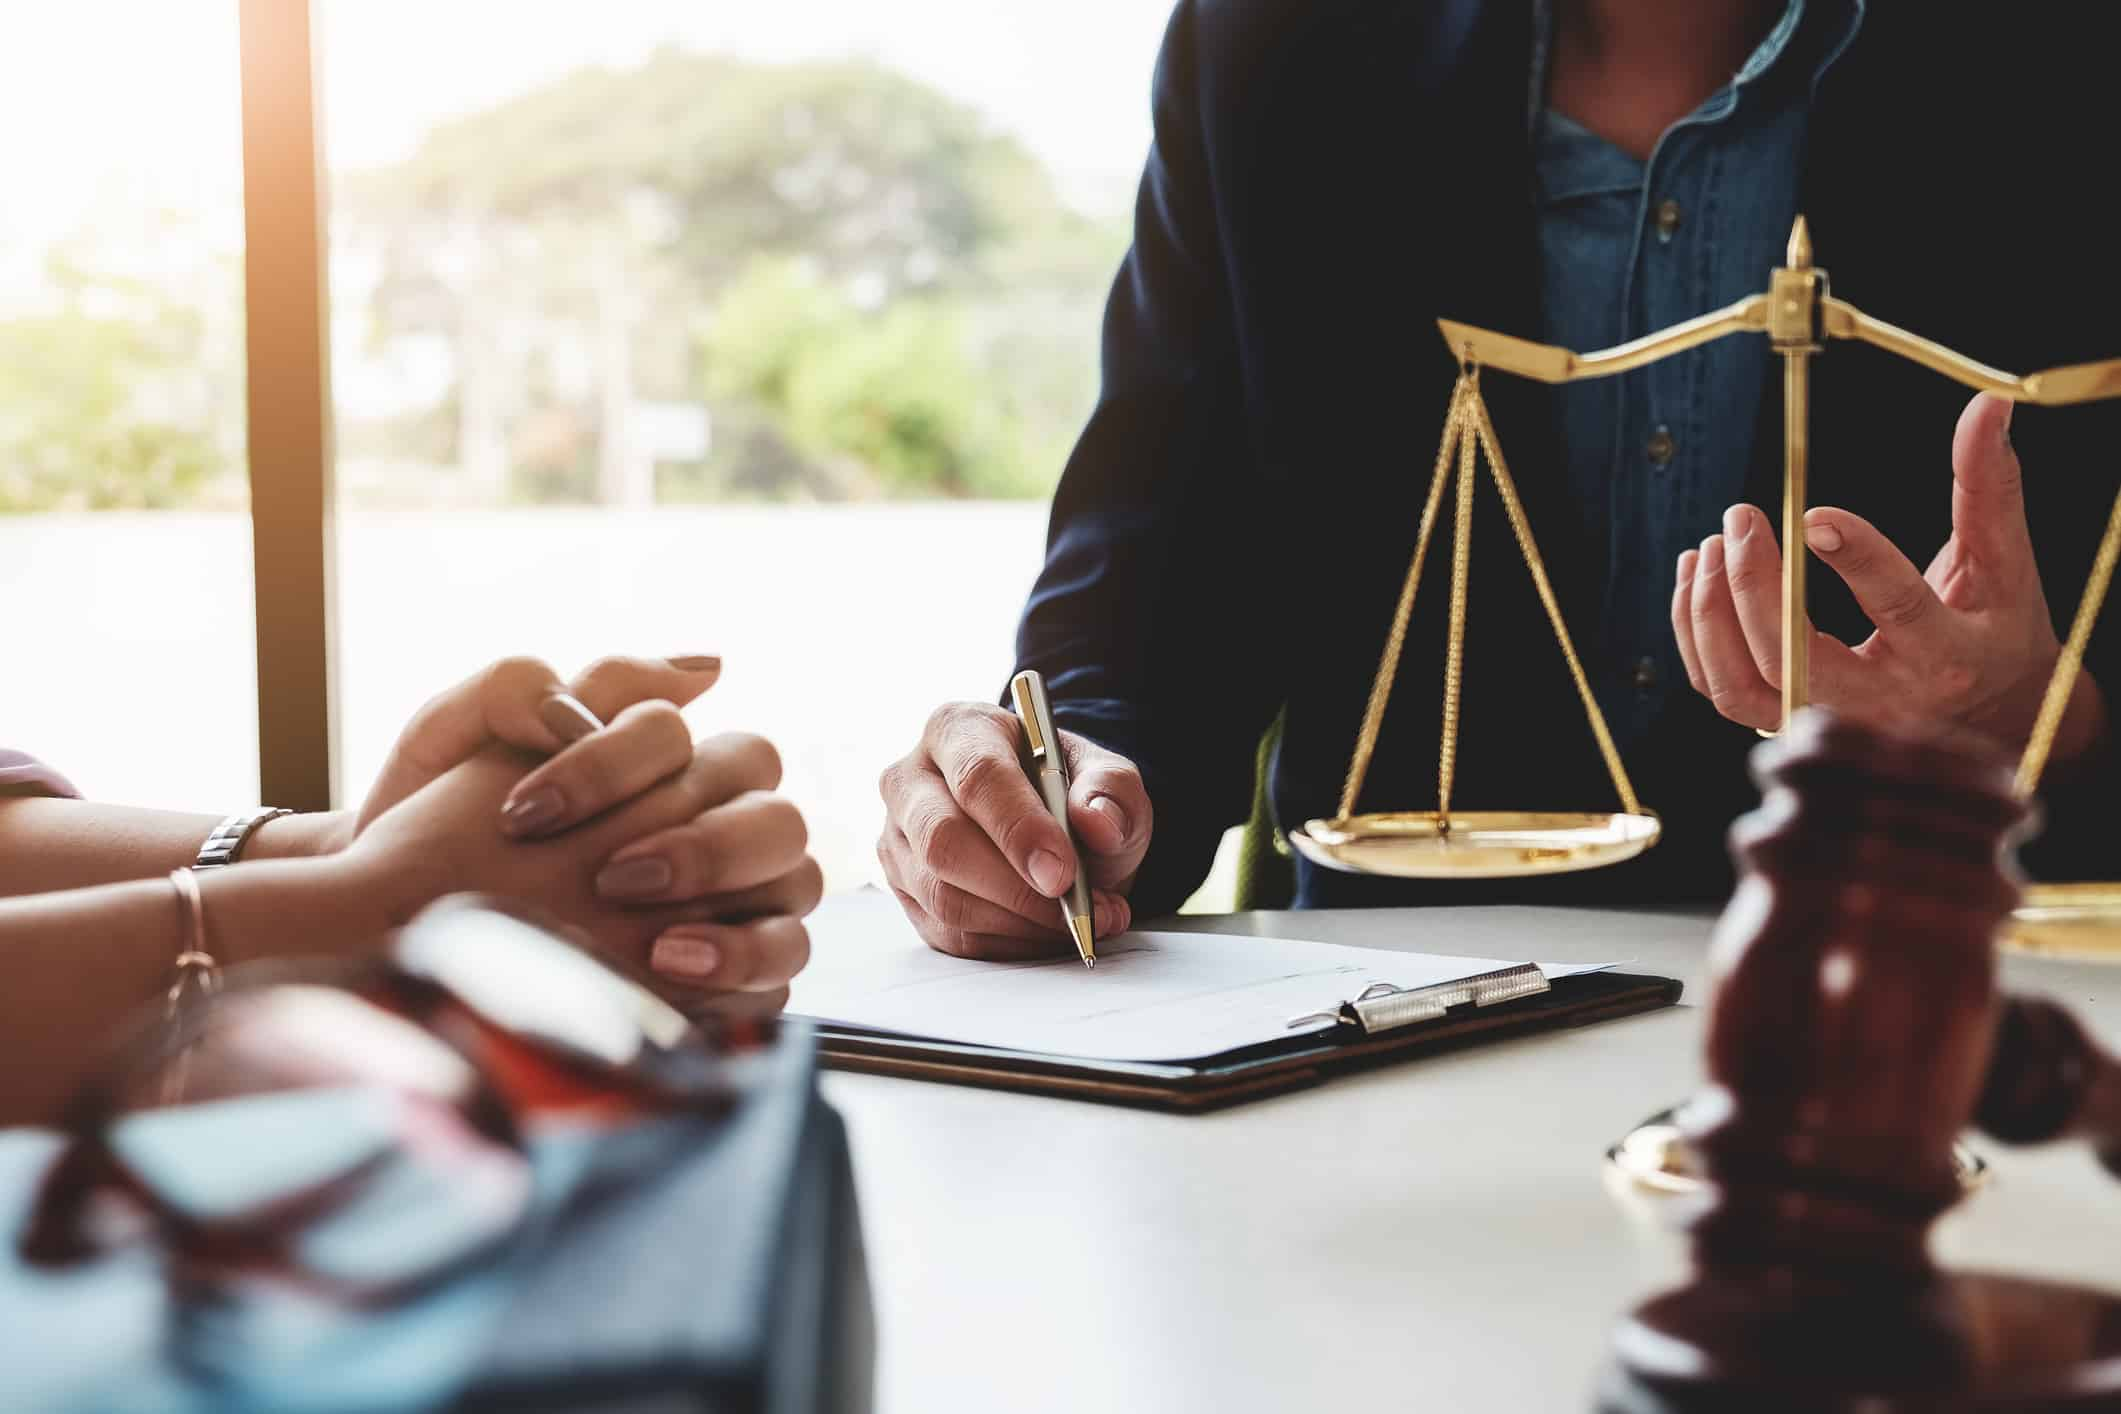 When Do You Need a Tax Attorney? - Moneytips by Debt.com